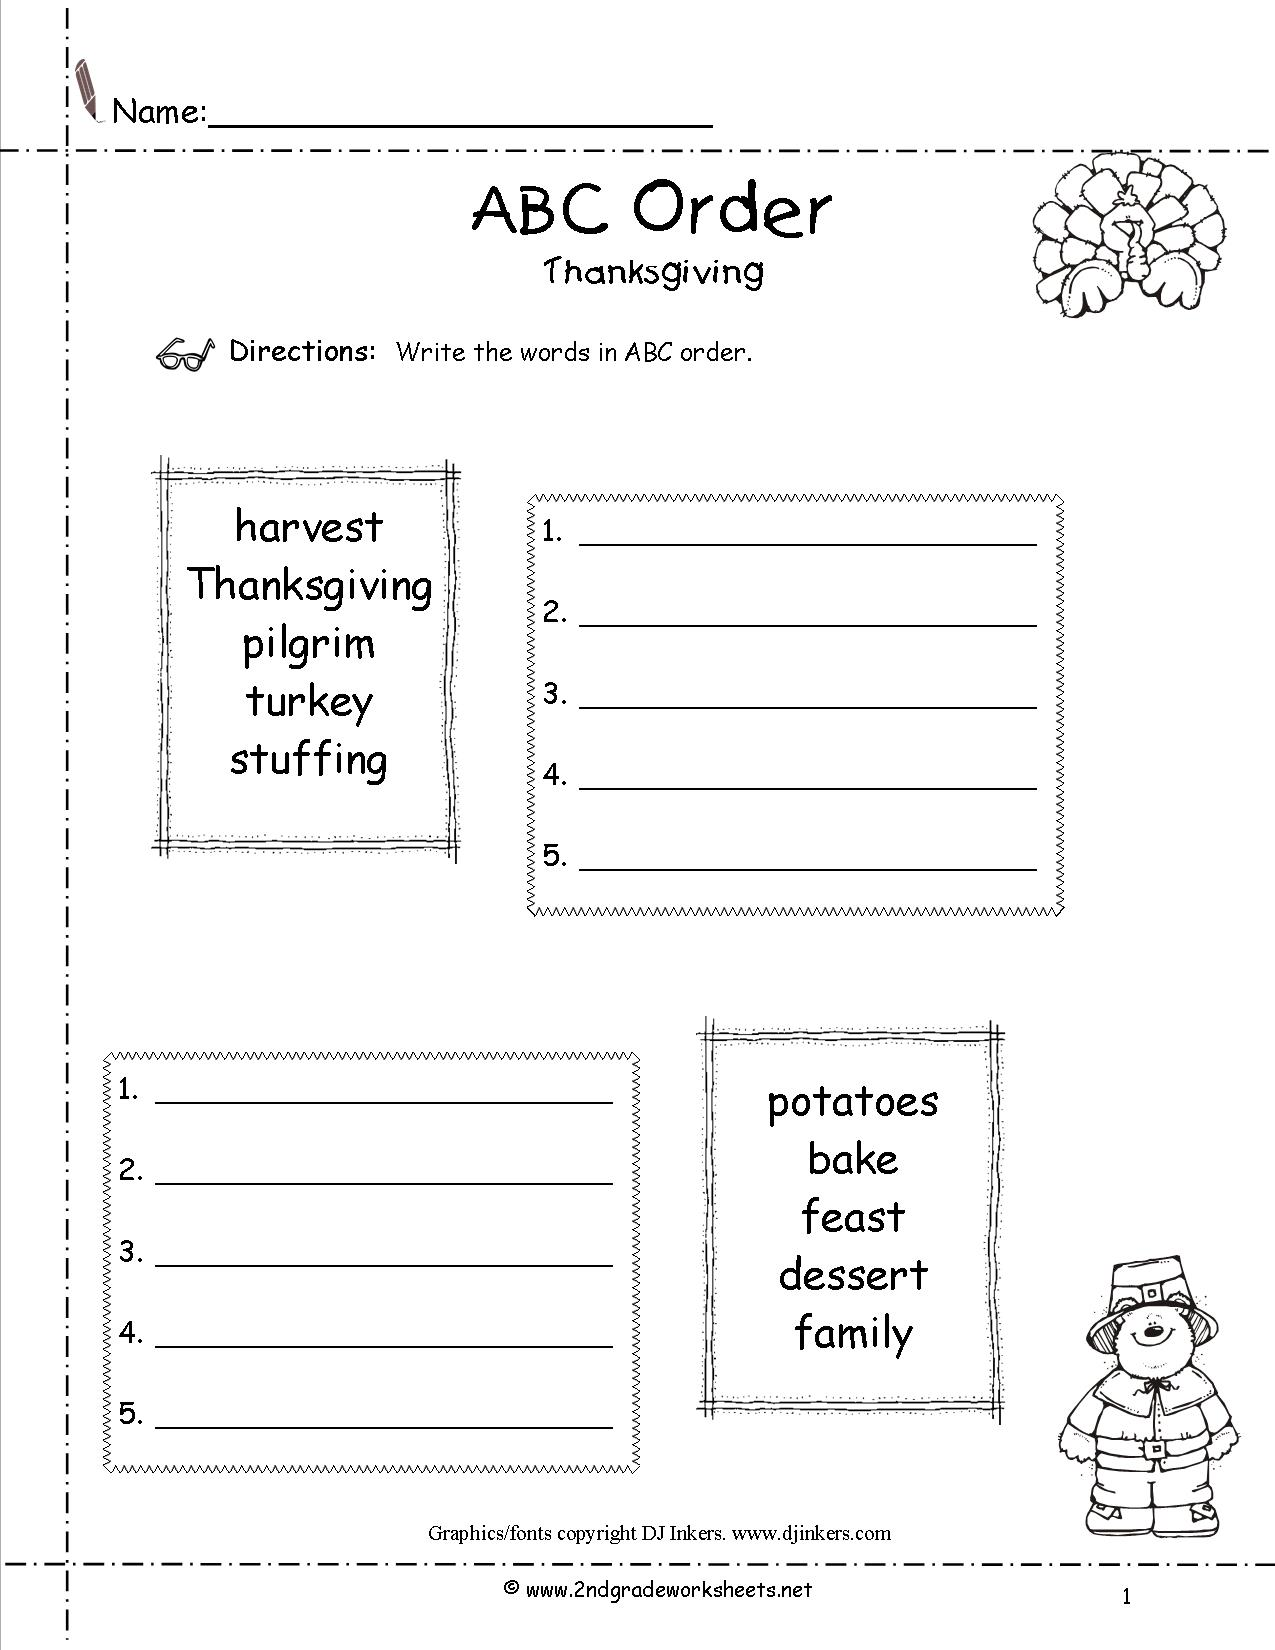 11 Best Images Of Printable Abc Order Worksheets